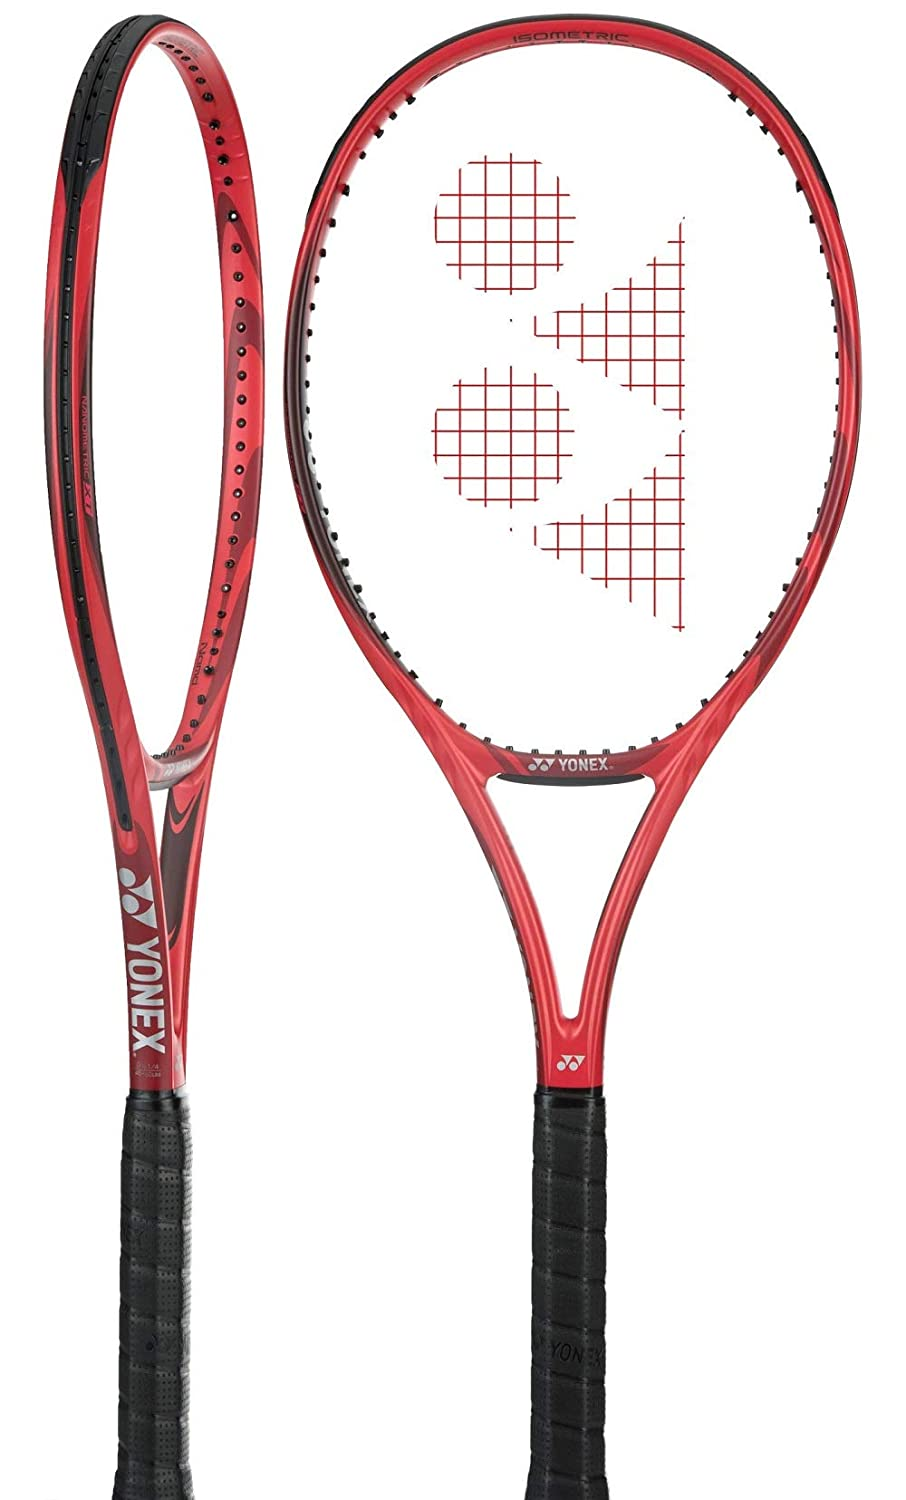 Best Racket for Tournament Juniors Junior Tennis Racquet Strung with Complimentary Custom String Colors 100 Square Inch Head Yonex VCORE 26 16x18 Midplus